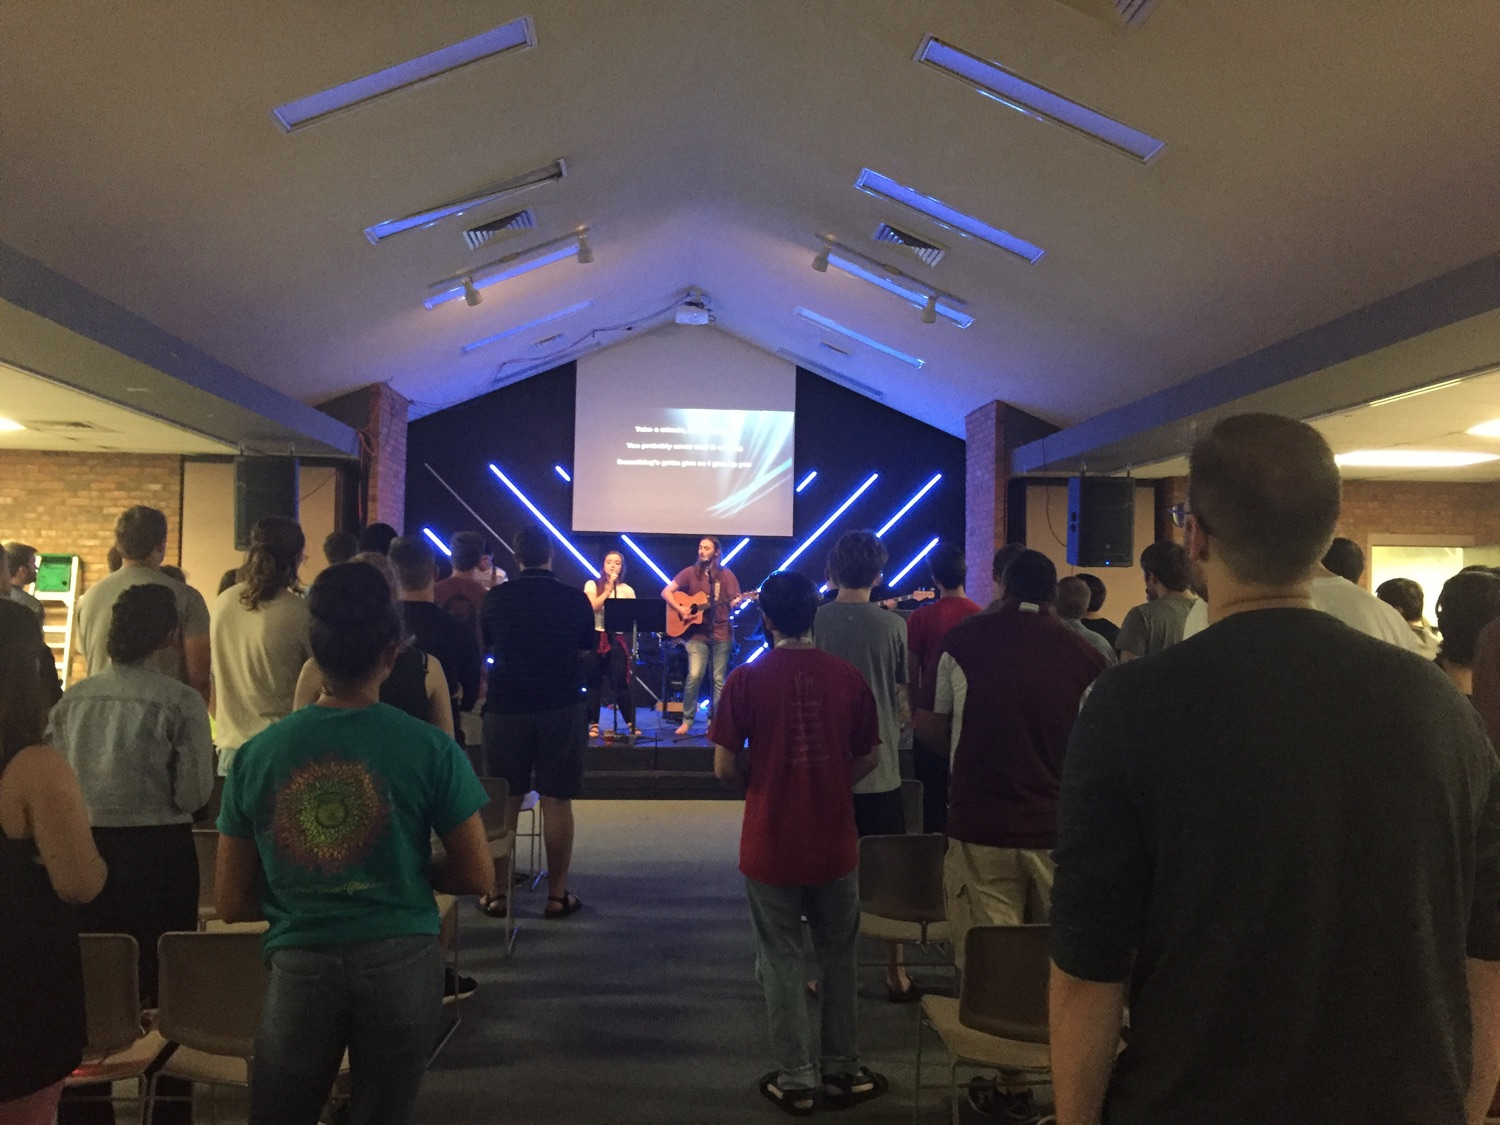 TUESDAY NIGHT WORSHIP - Tuesday Night Worship is every Tuesday night @ 7pm at the Baptist Student Center @ KSU Marietta. Join us for a night of worship and fellowship, and a relevant message.